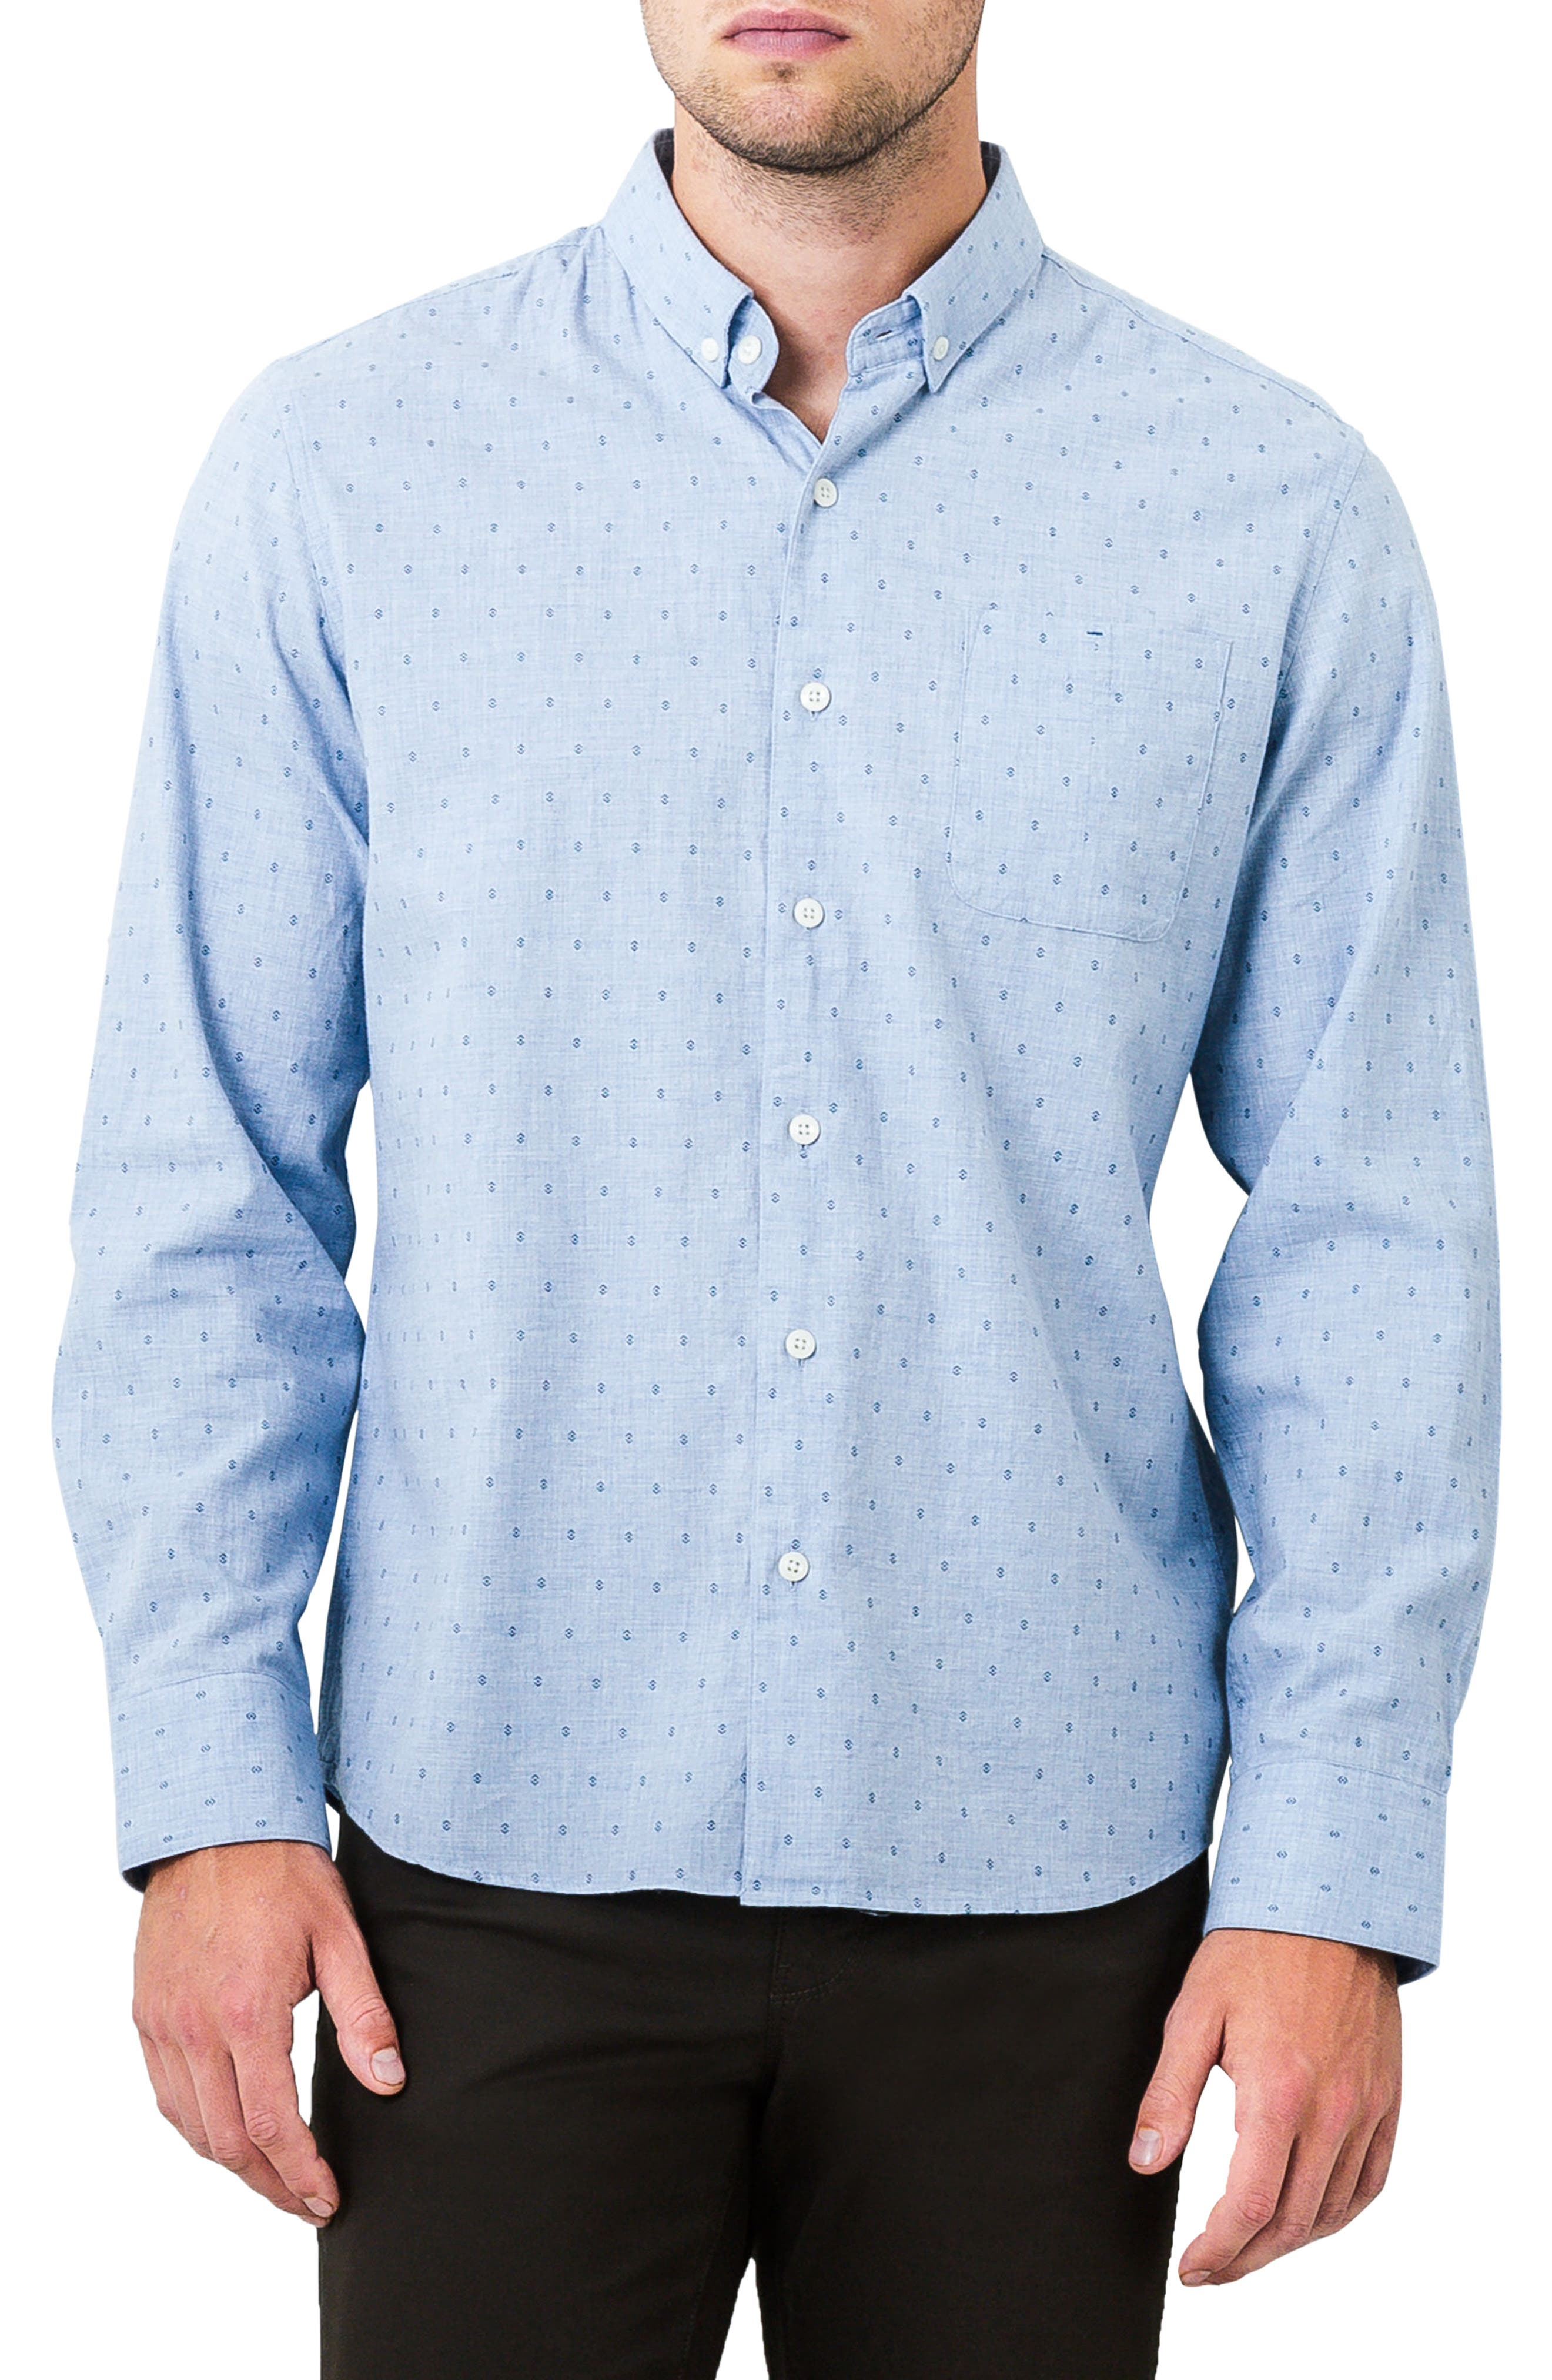 First Light Woven Shirt,                             Main thumbnail 1, color,                             Light Blue